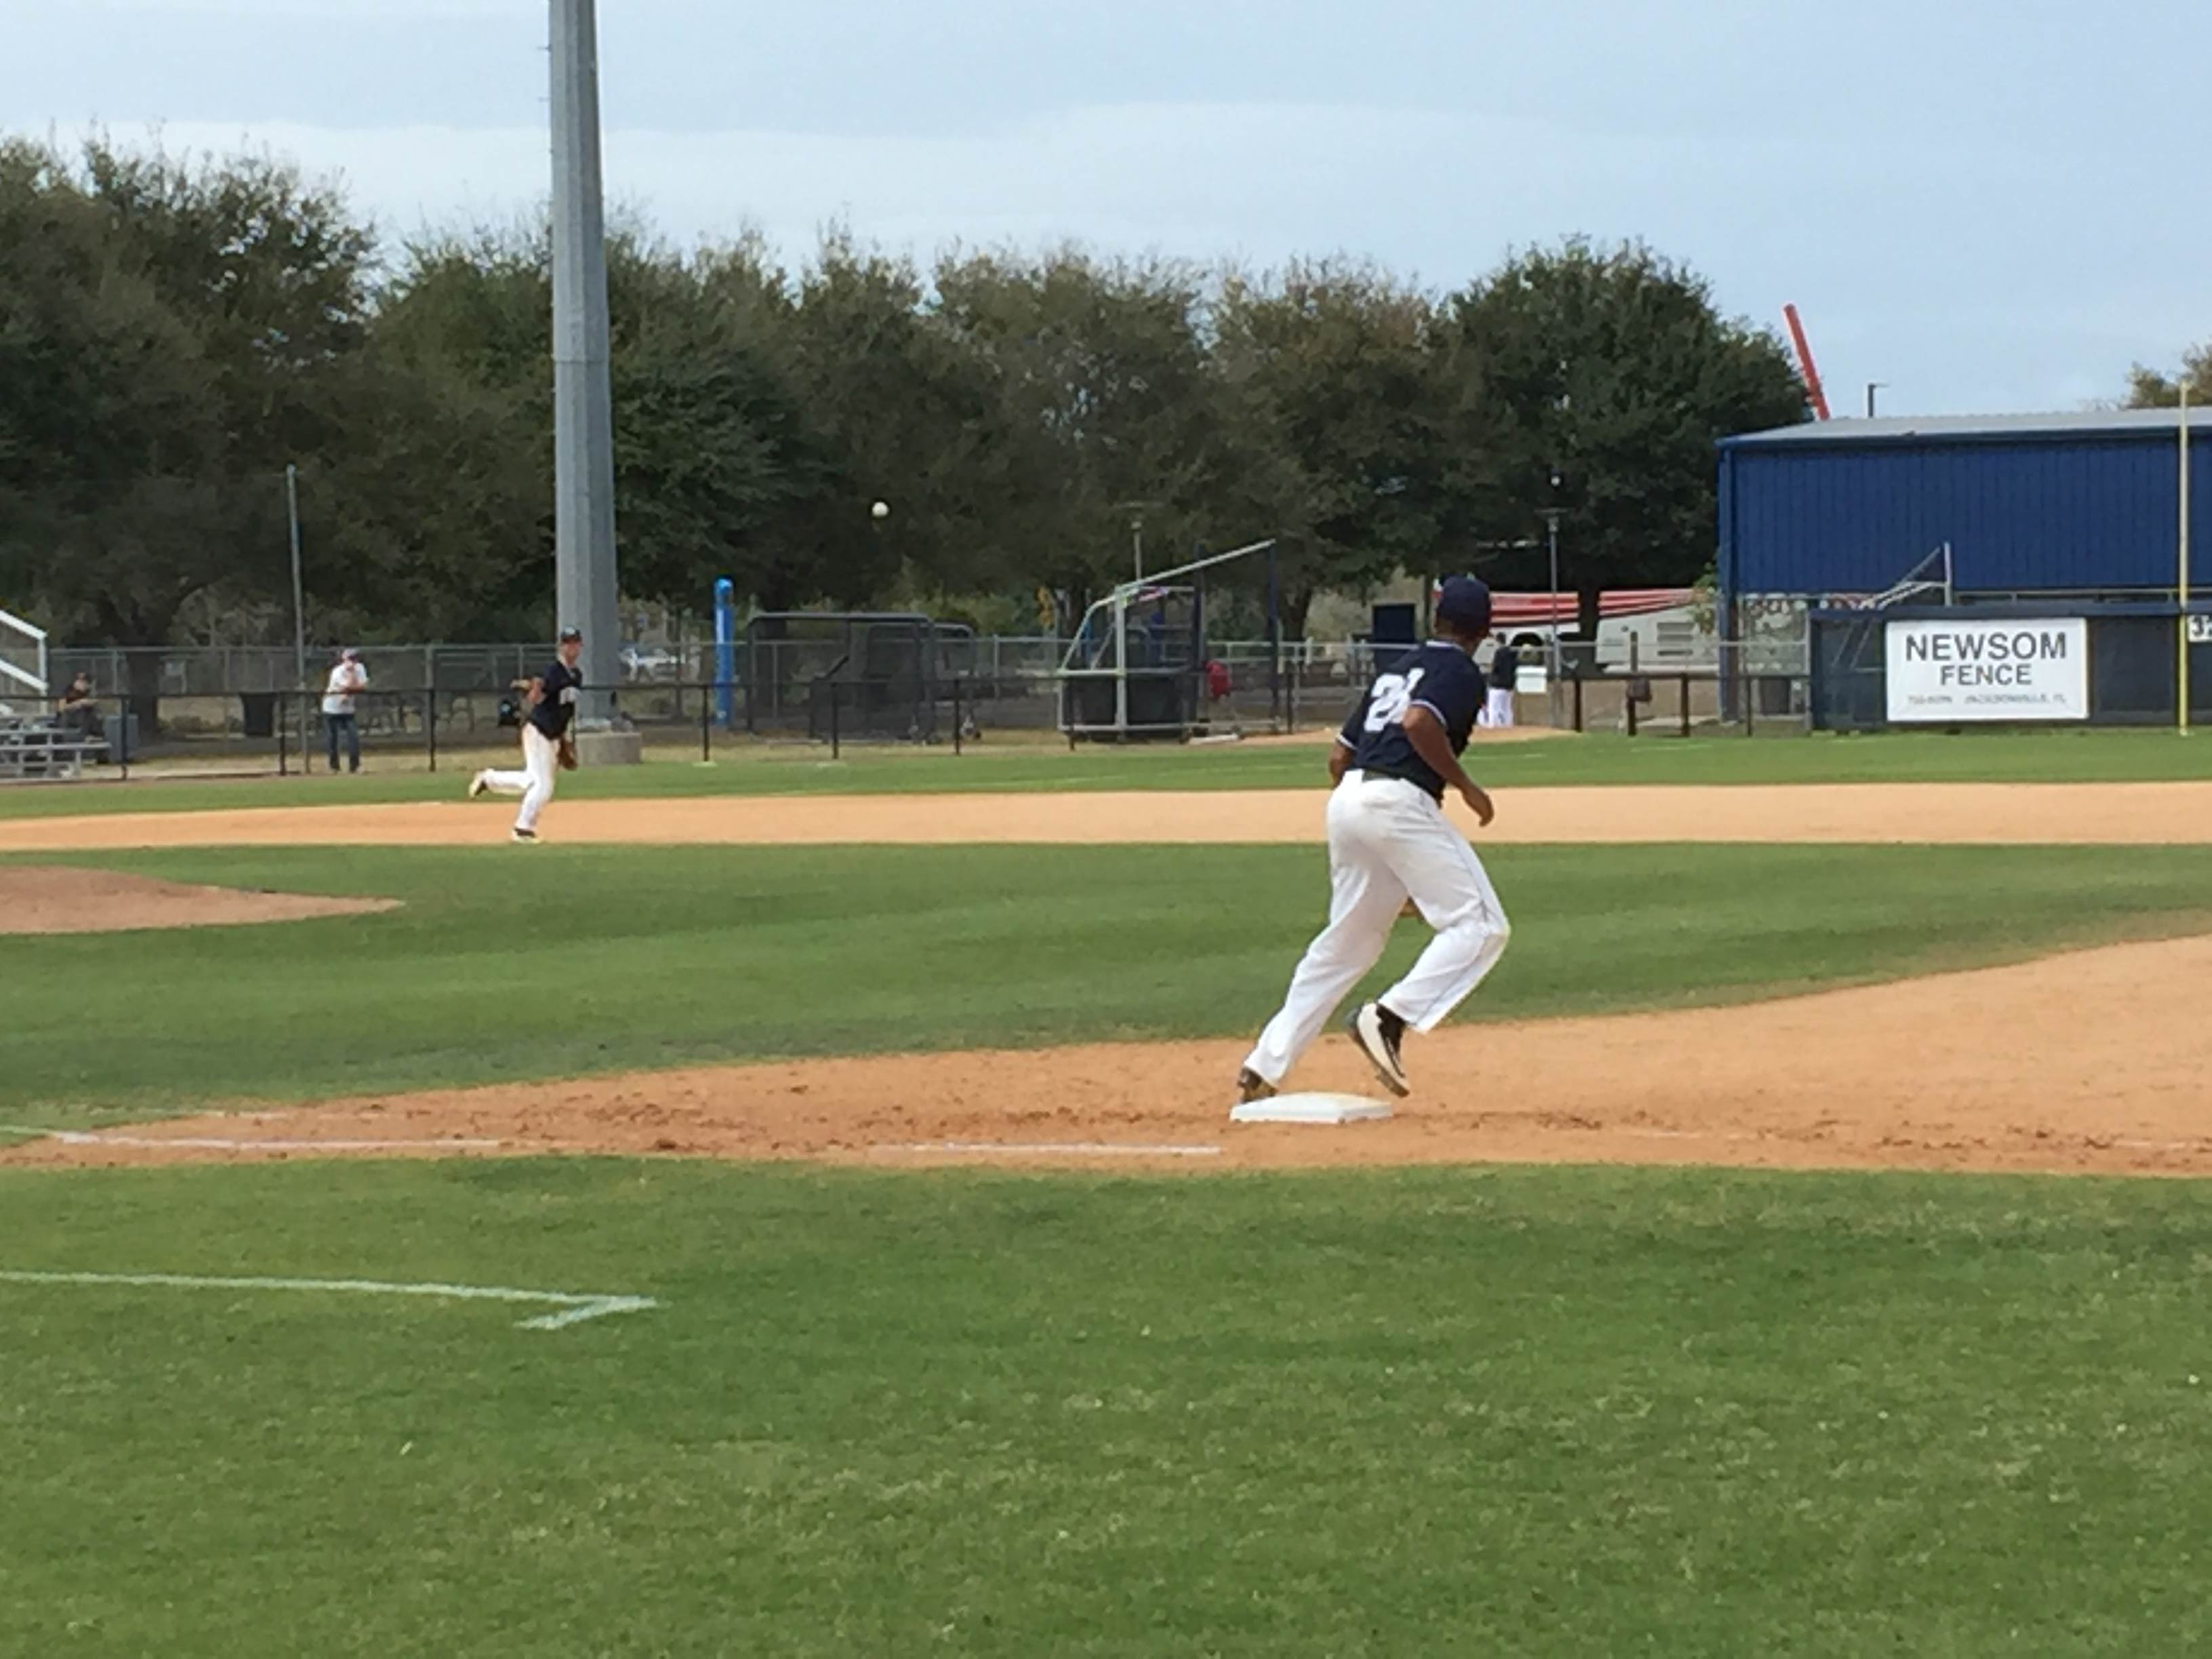 Ospreys sweep series, hit two walk-offs against UNC Wilmington